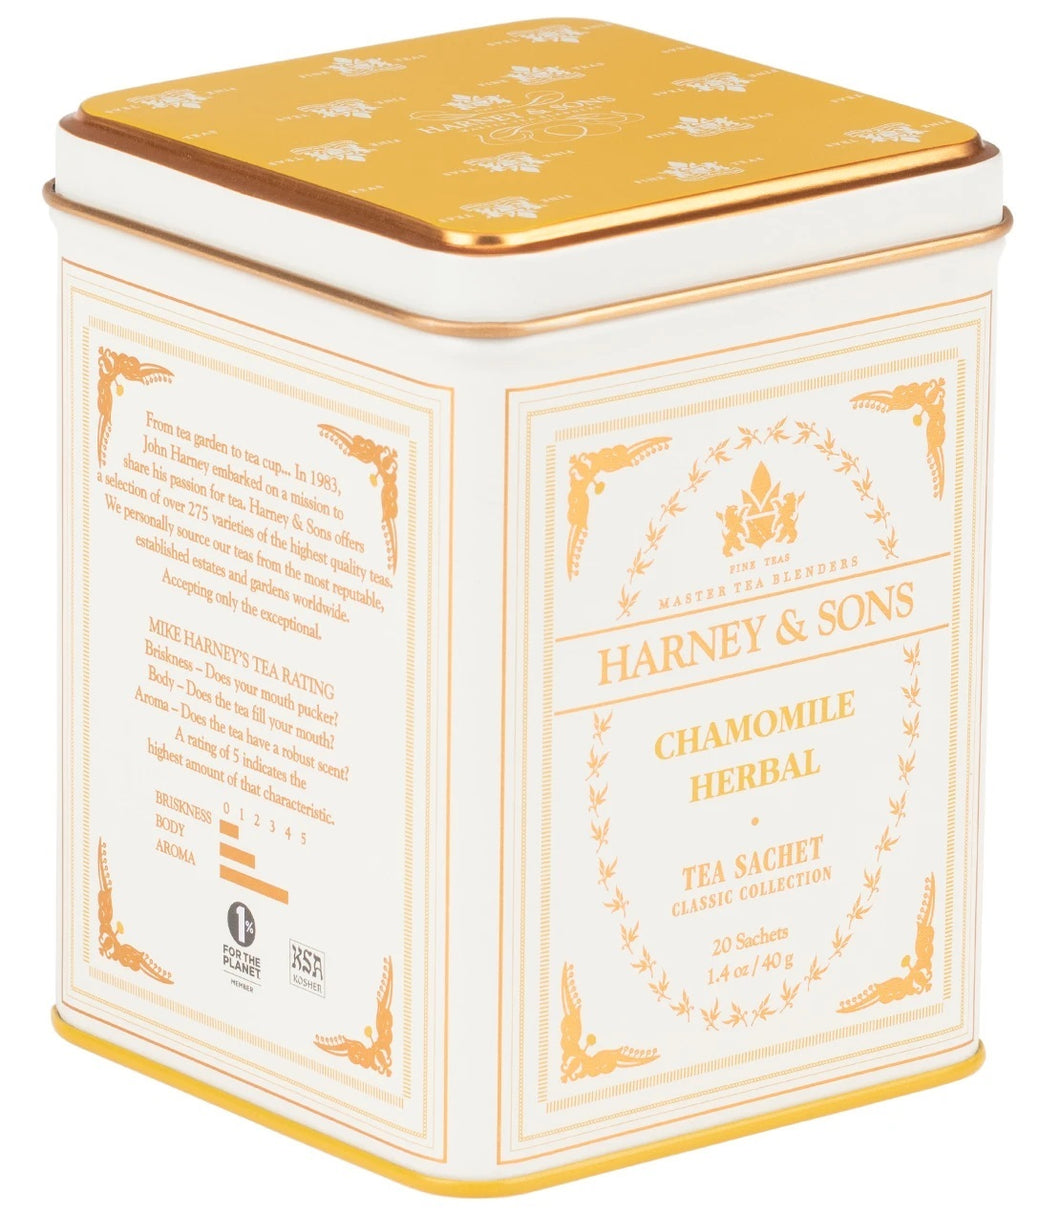 Chamomile Herbal, Classic Tin of 20 Sachets